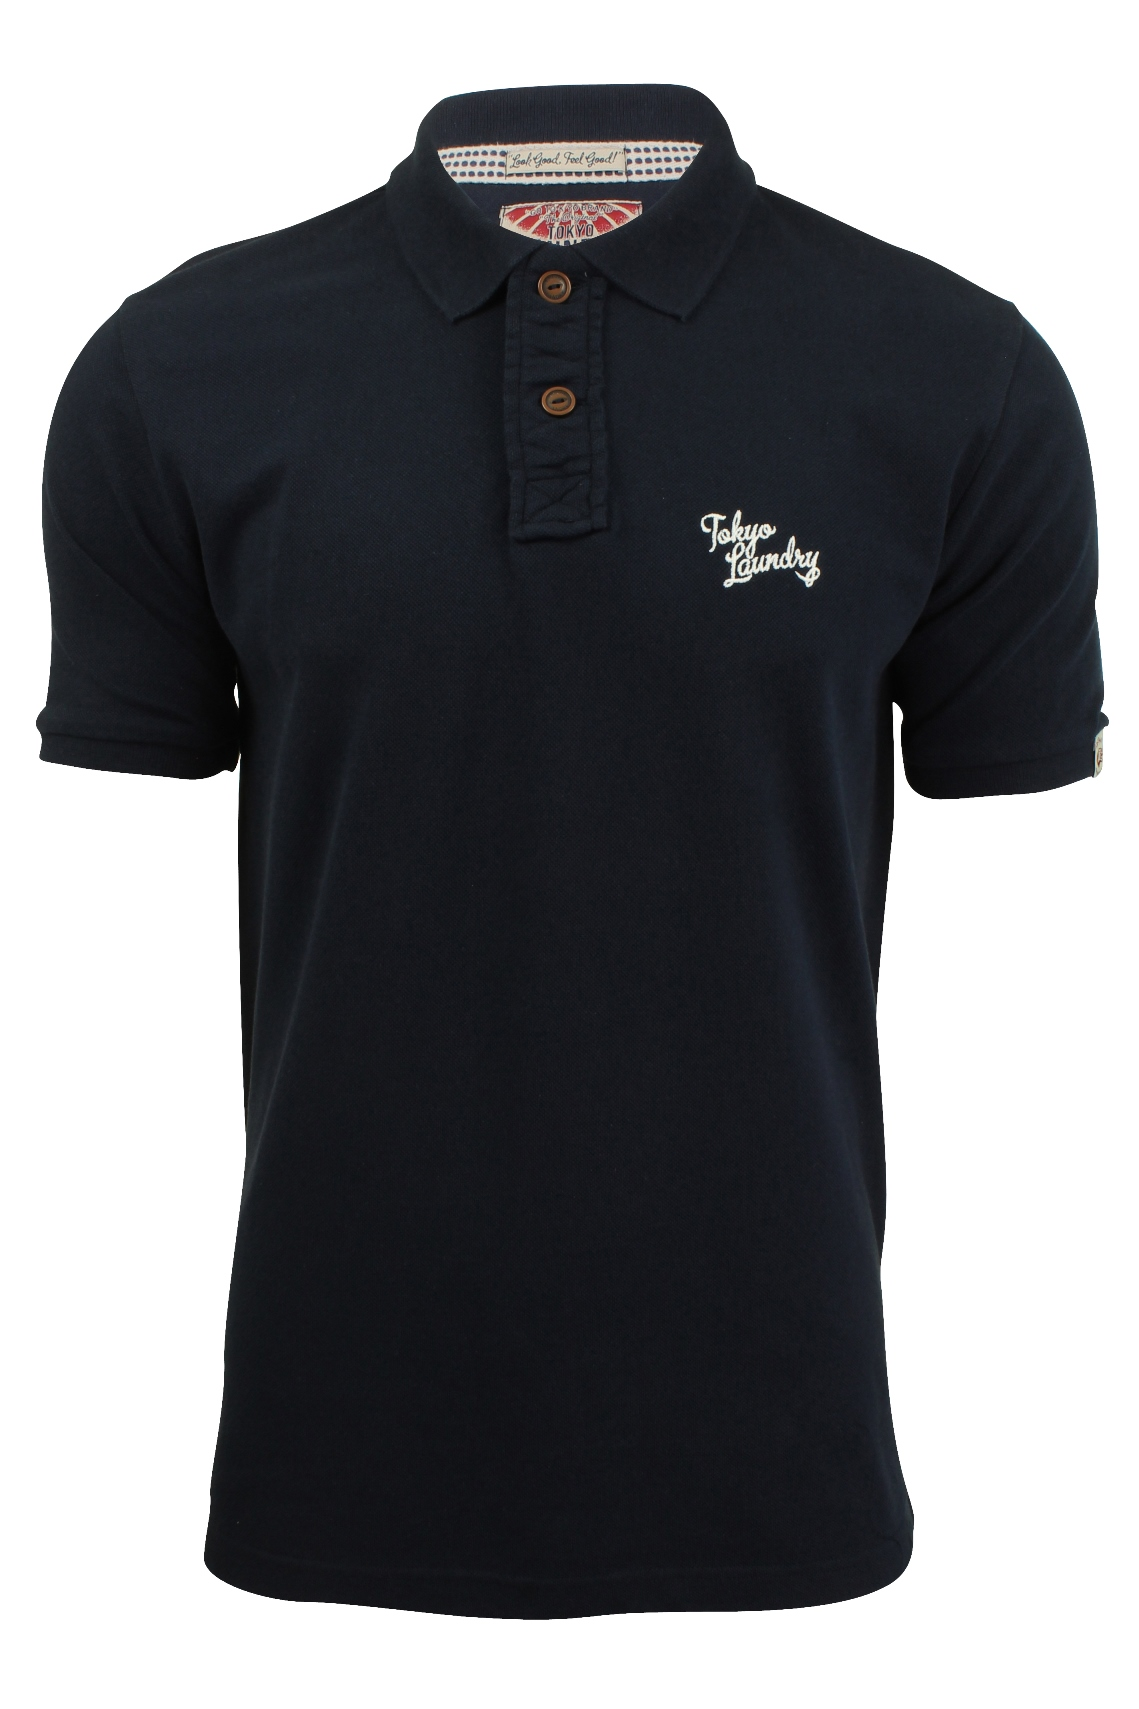 Mens pique polo t shirt by tokyo laundry short sleeved for Mens collared t shirts